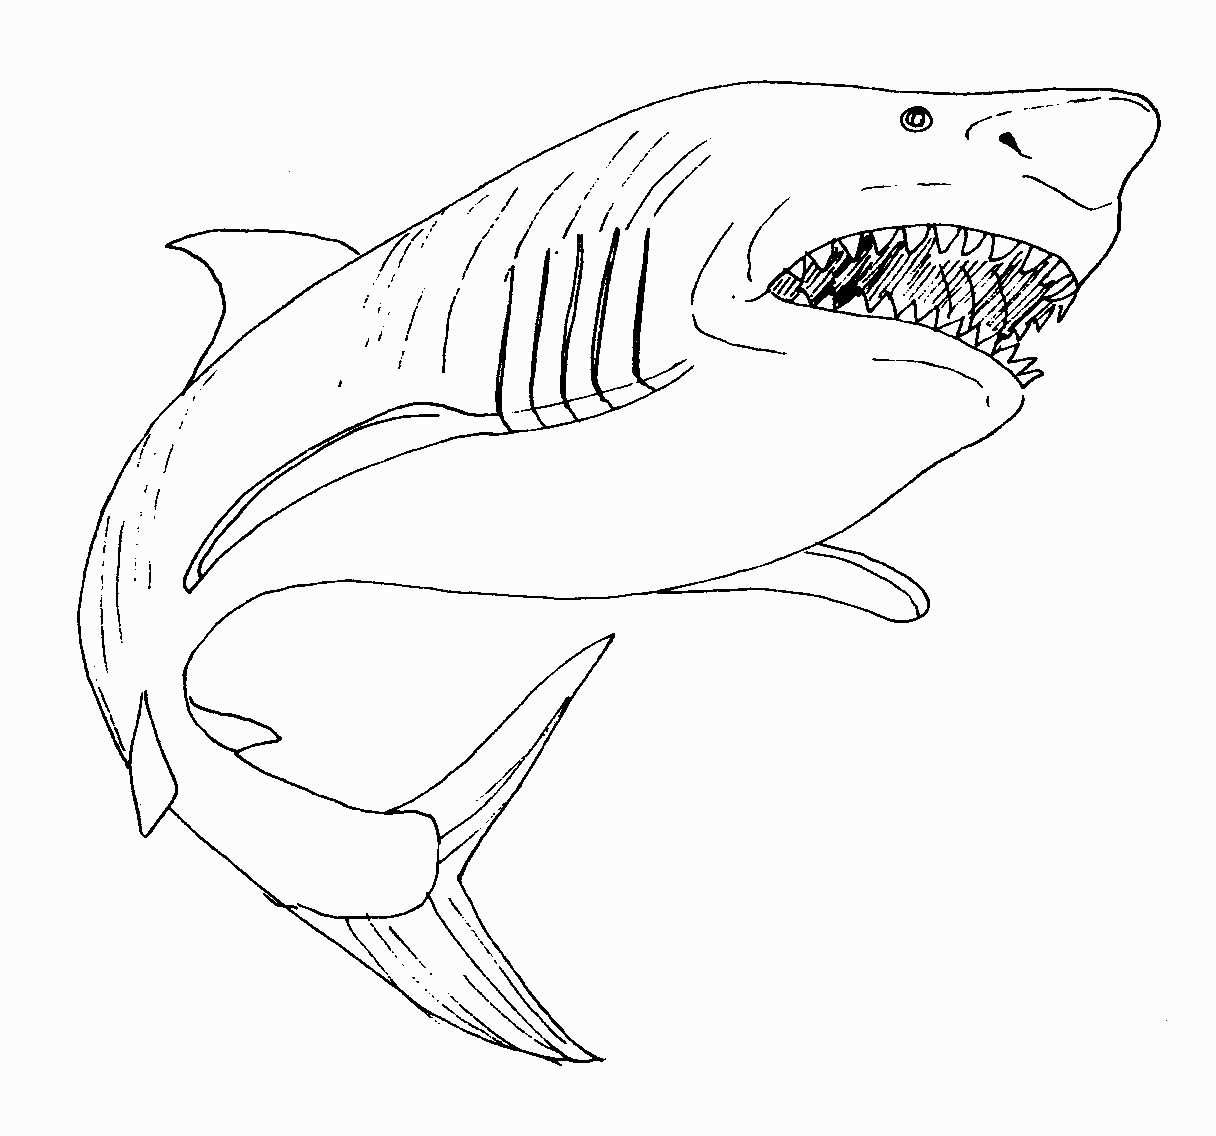 28 Great White Shark Coloring Page In 2020 With Images Shark